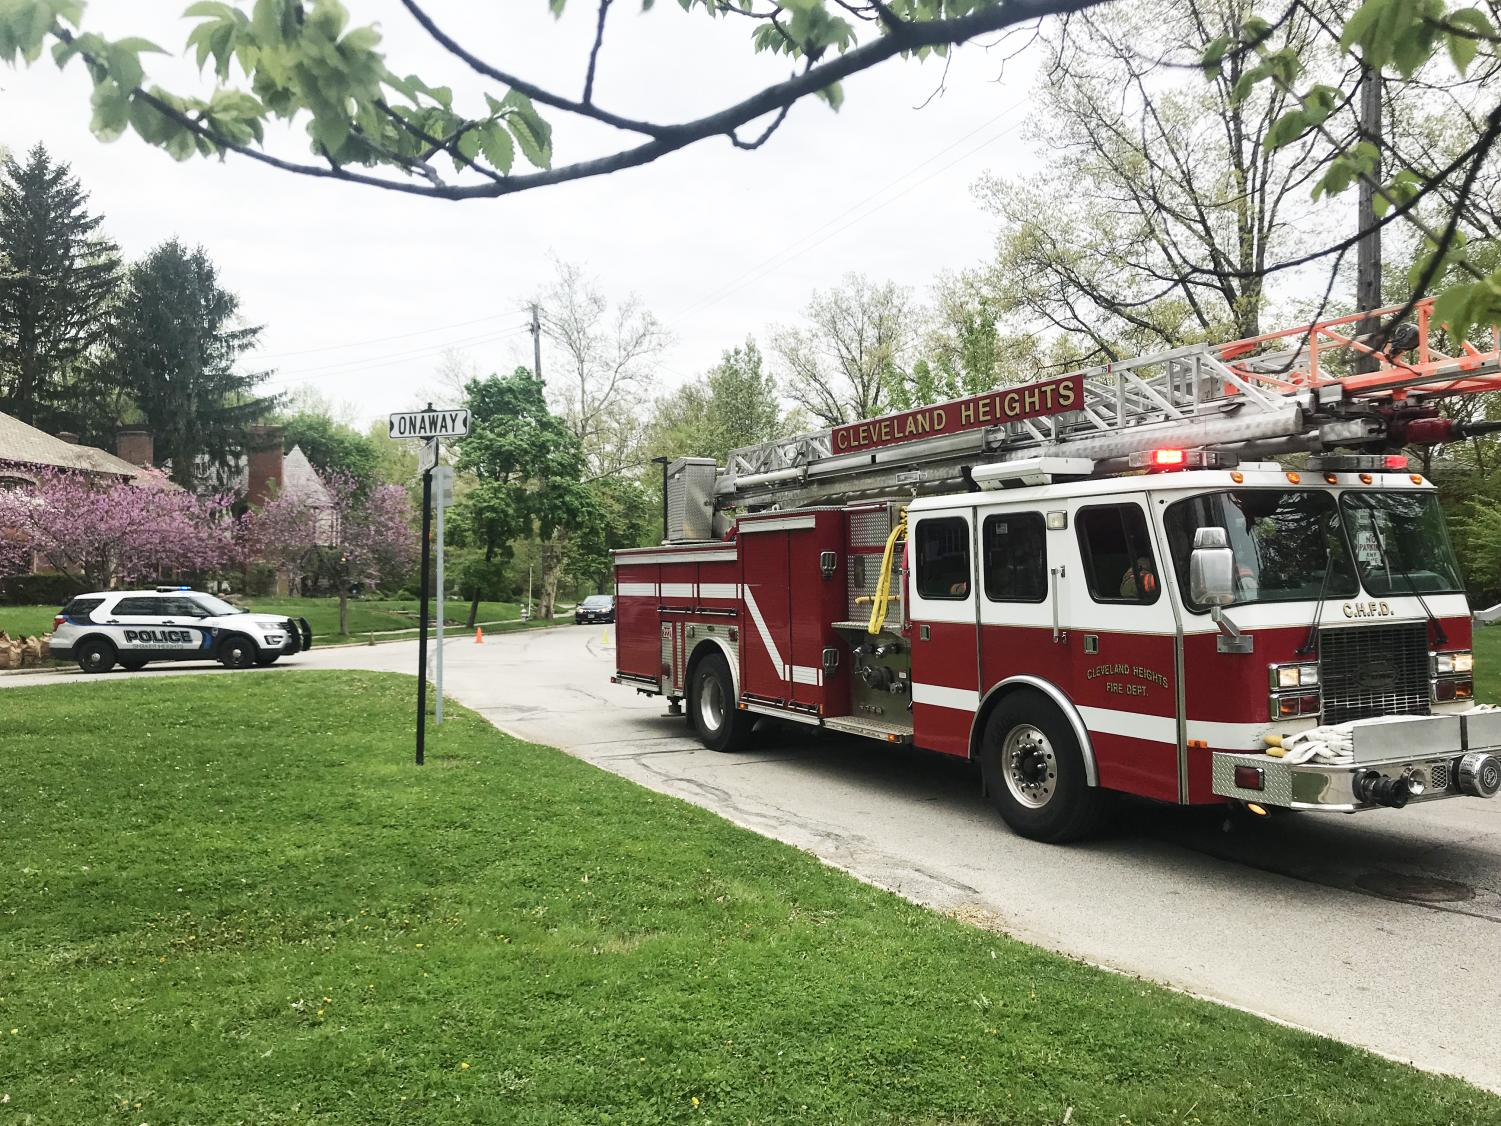 Emergency vehicles surrounded the perimeter of the high school after students were evacuated and dismissed due to a fire.